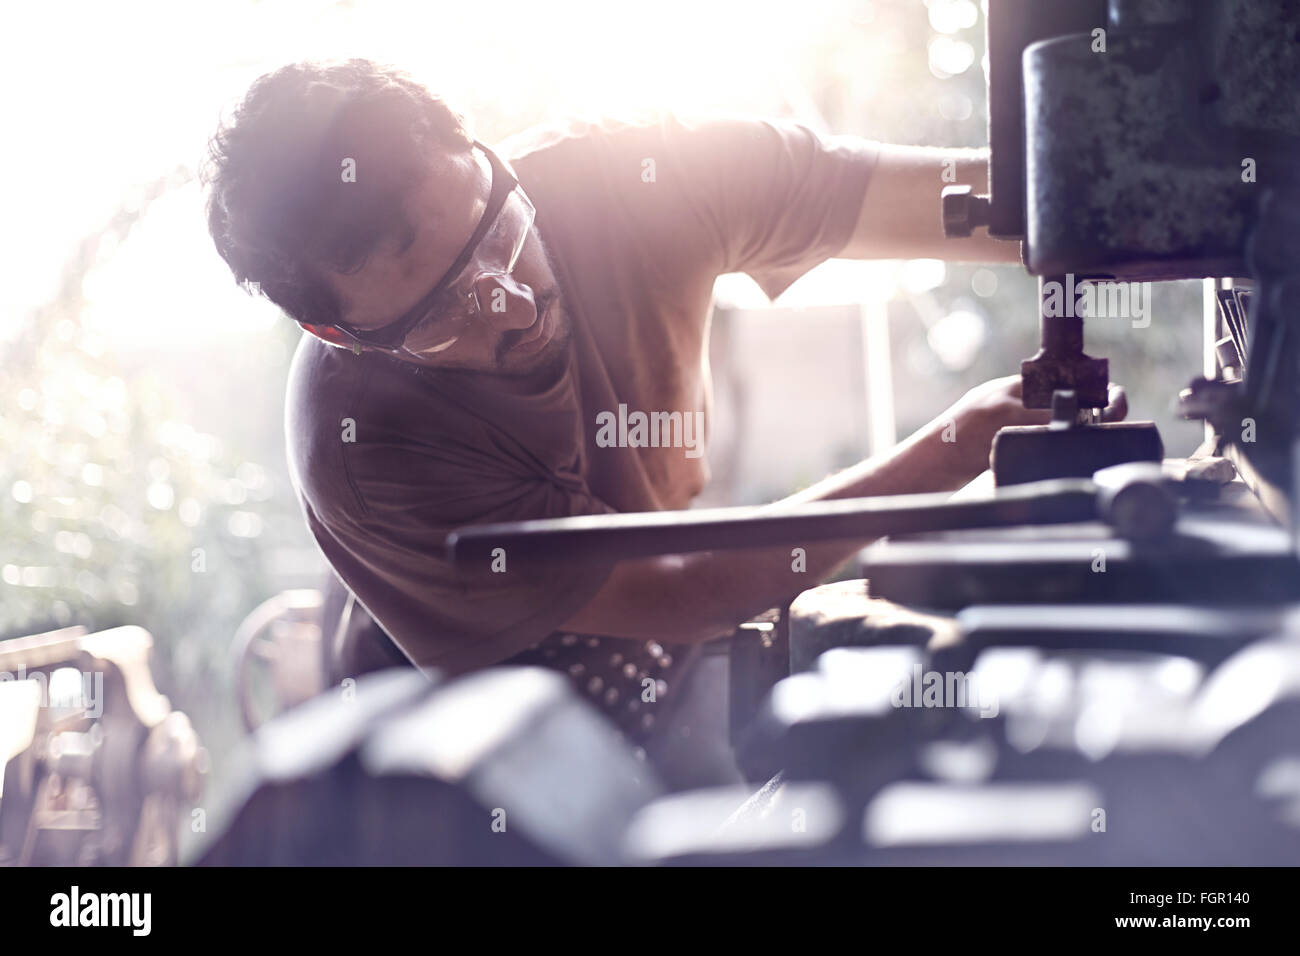 Blacksmith using vise grip in forge - Stock Image